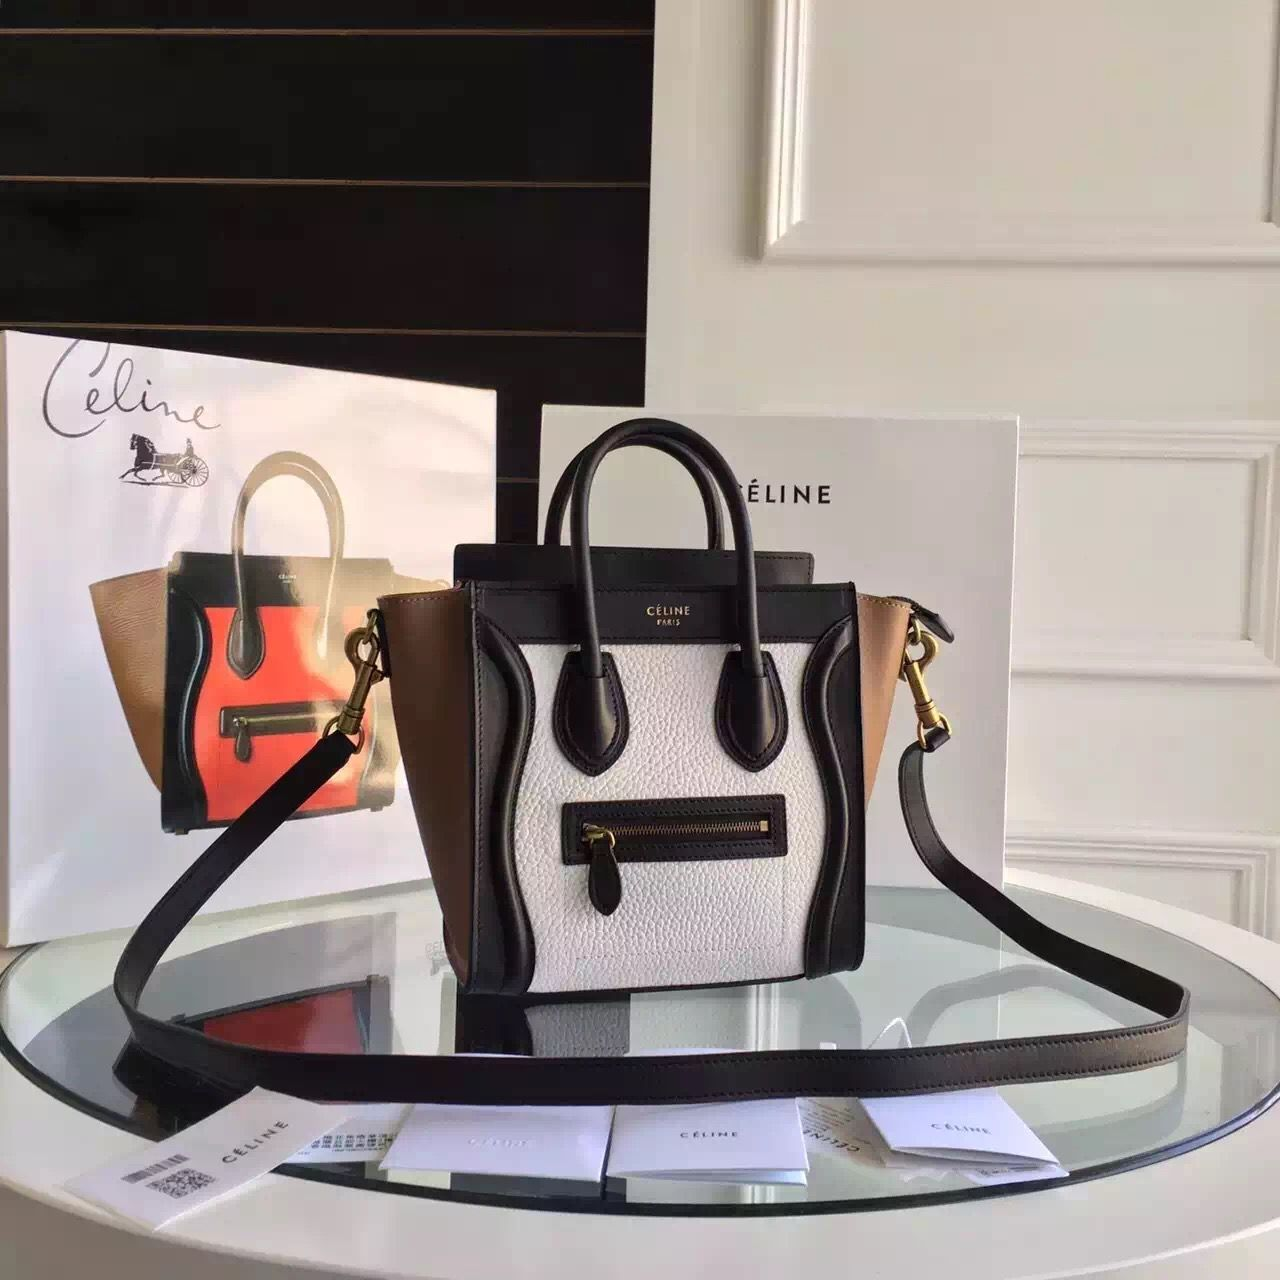 cf9fc325bdc996 Celine Tricolor Nano Luggage in Original Grainy and Smooth Calfskin  White/Black/Brown